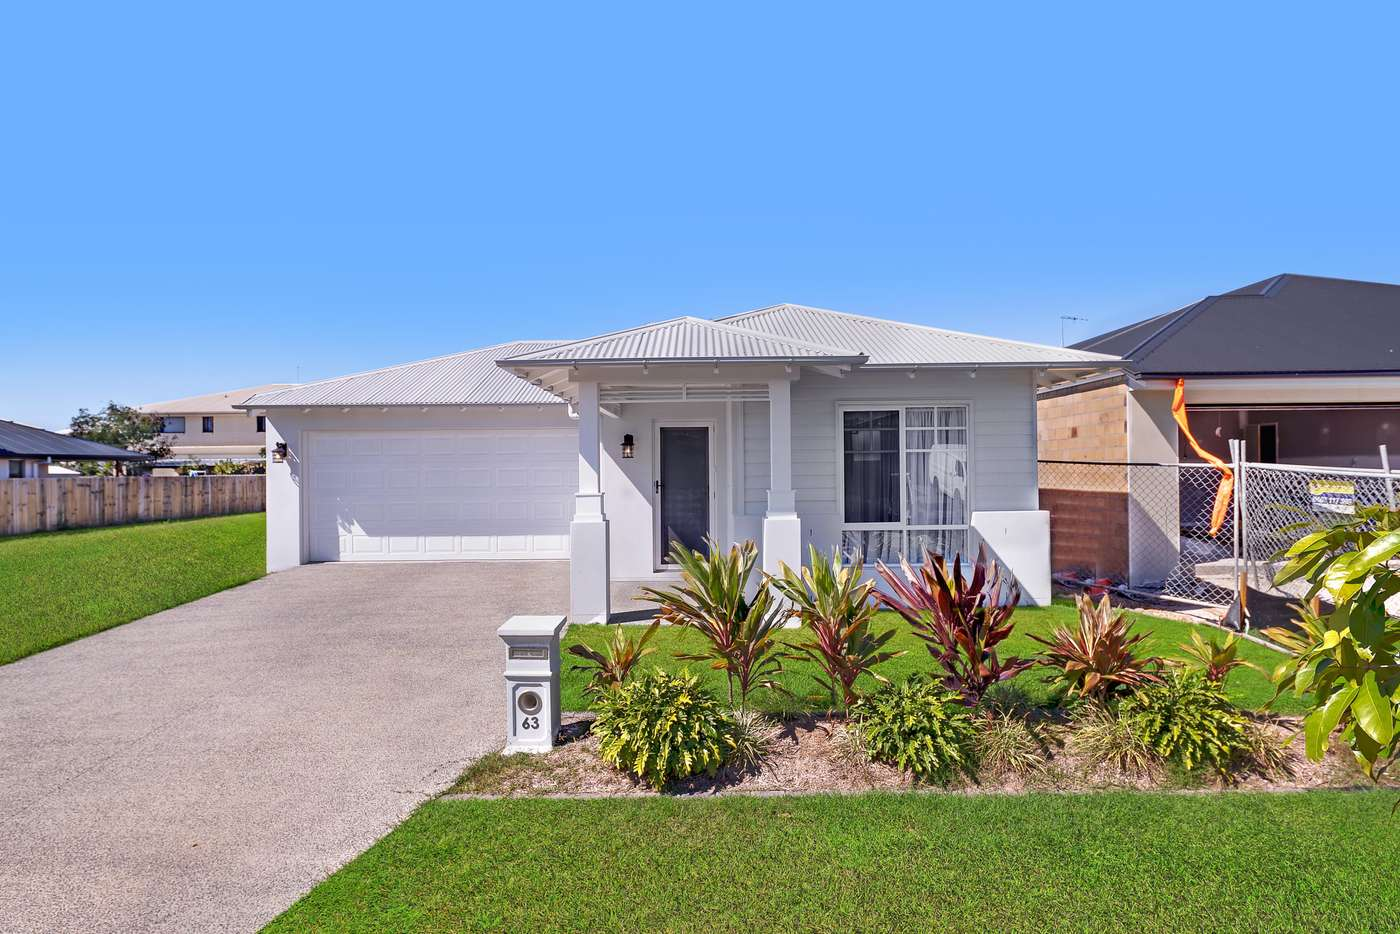 Main view of Homely house listing, 63 Palatial Crescent, Griffin QLD 4503